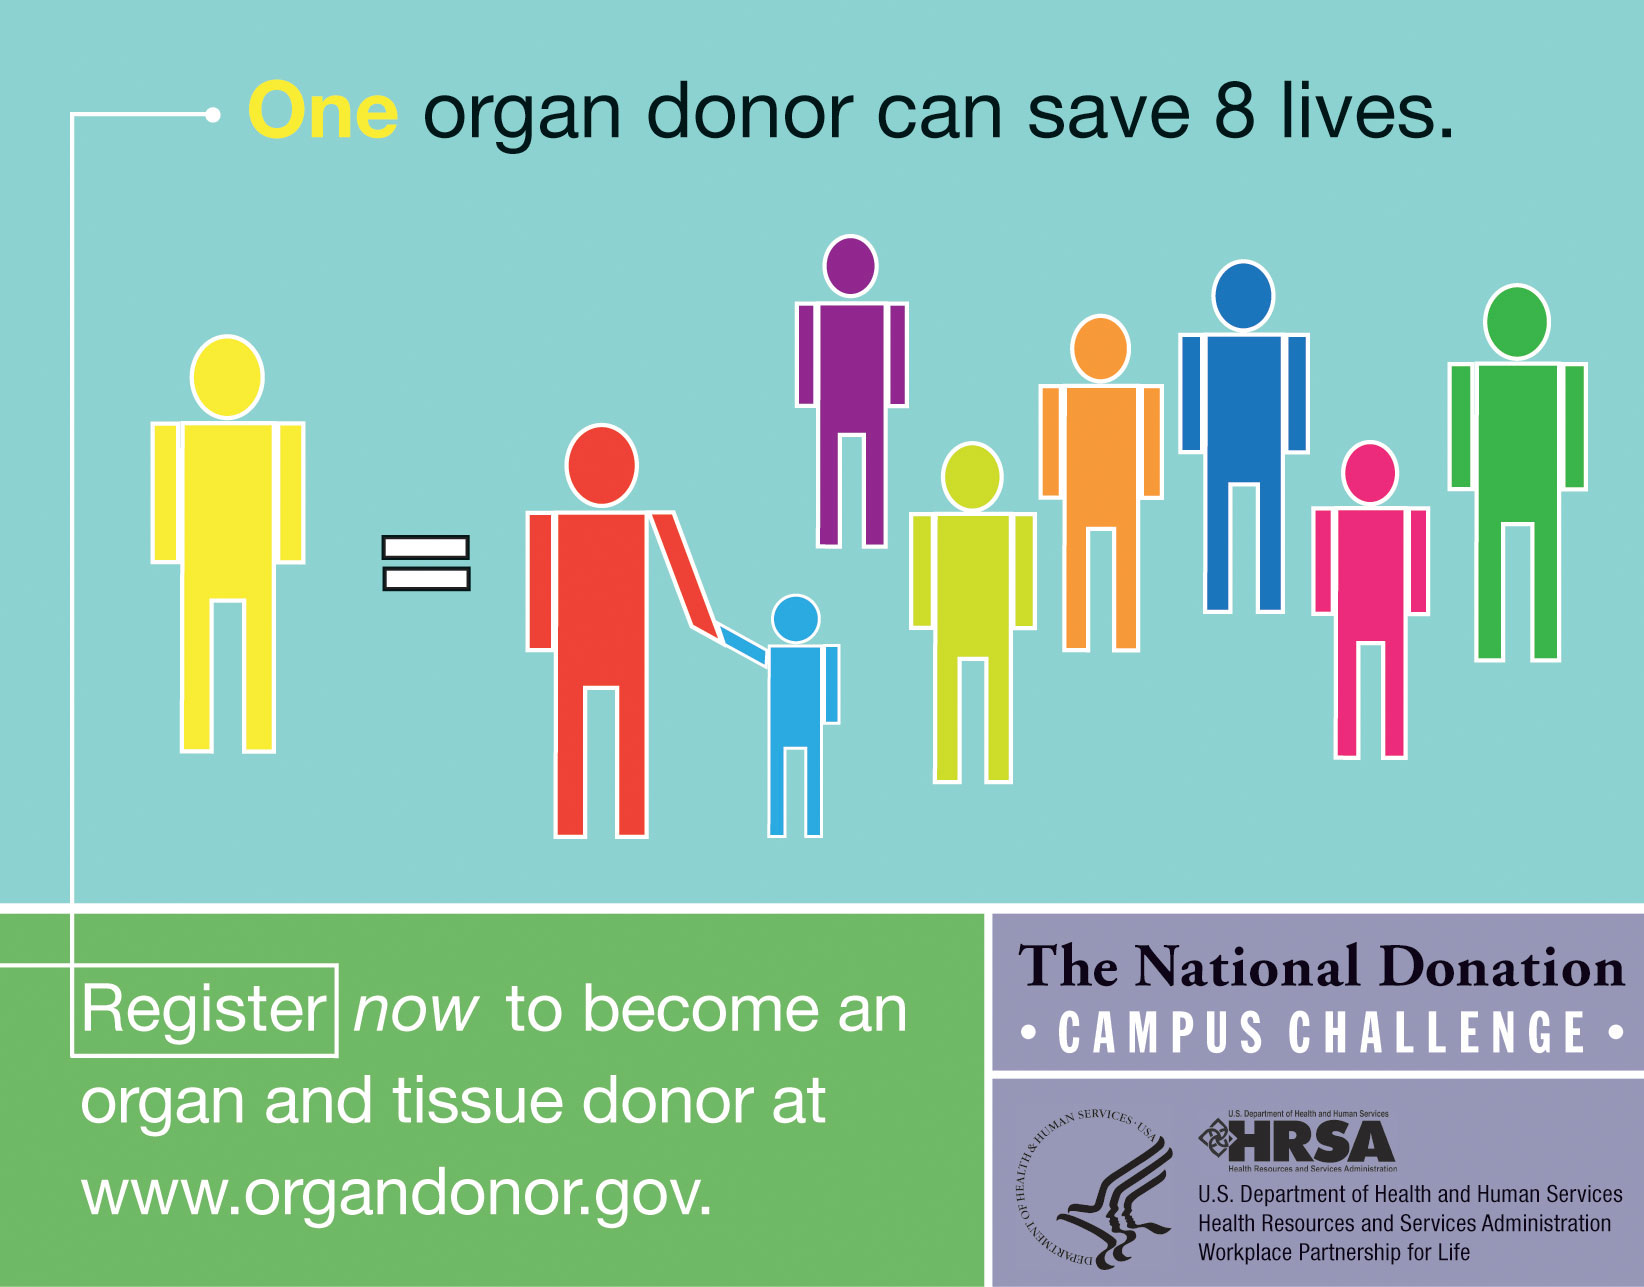 organ transplant and donors Organ transplantation saves thousands of lives every year but the shortage of  donors is a major limiting factor to increase transplantation rates.